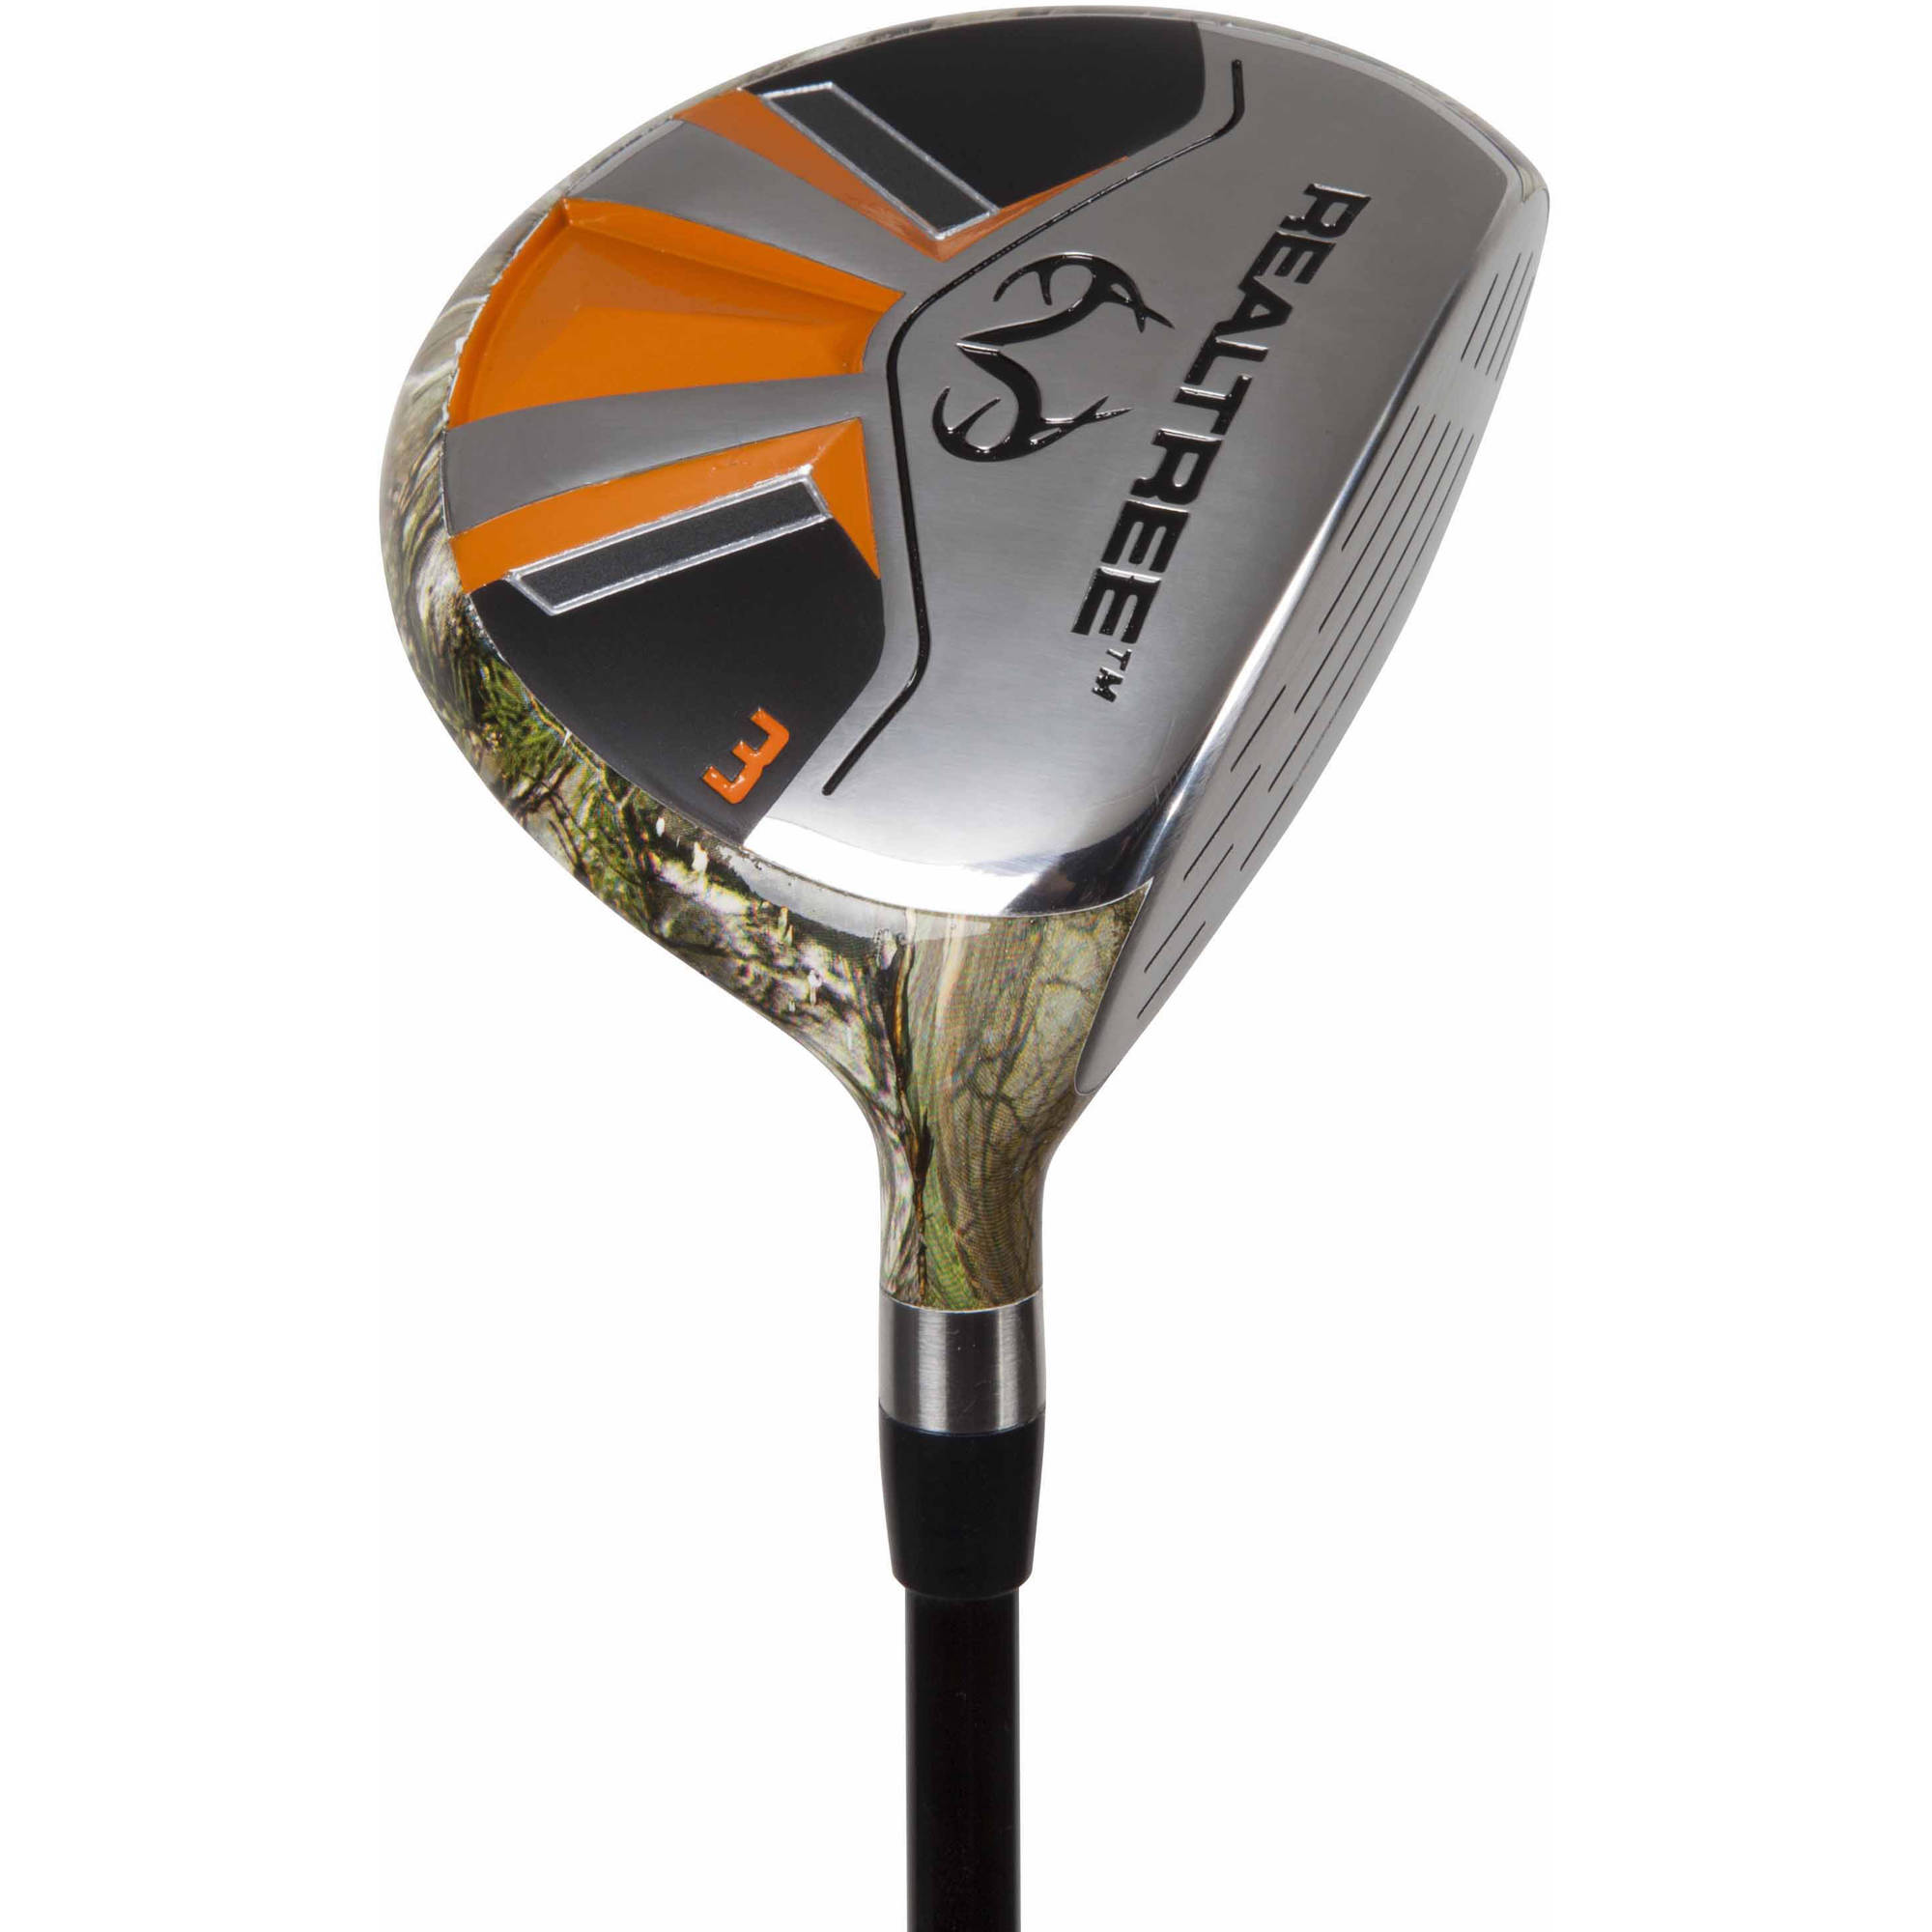 Realtree Xtra Men's 3 Wood, Right Hand, Graphite